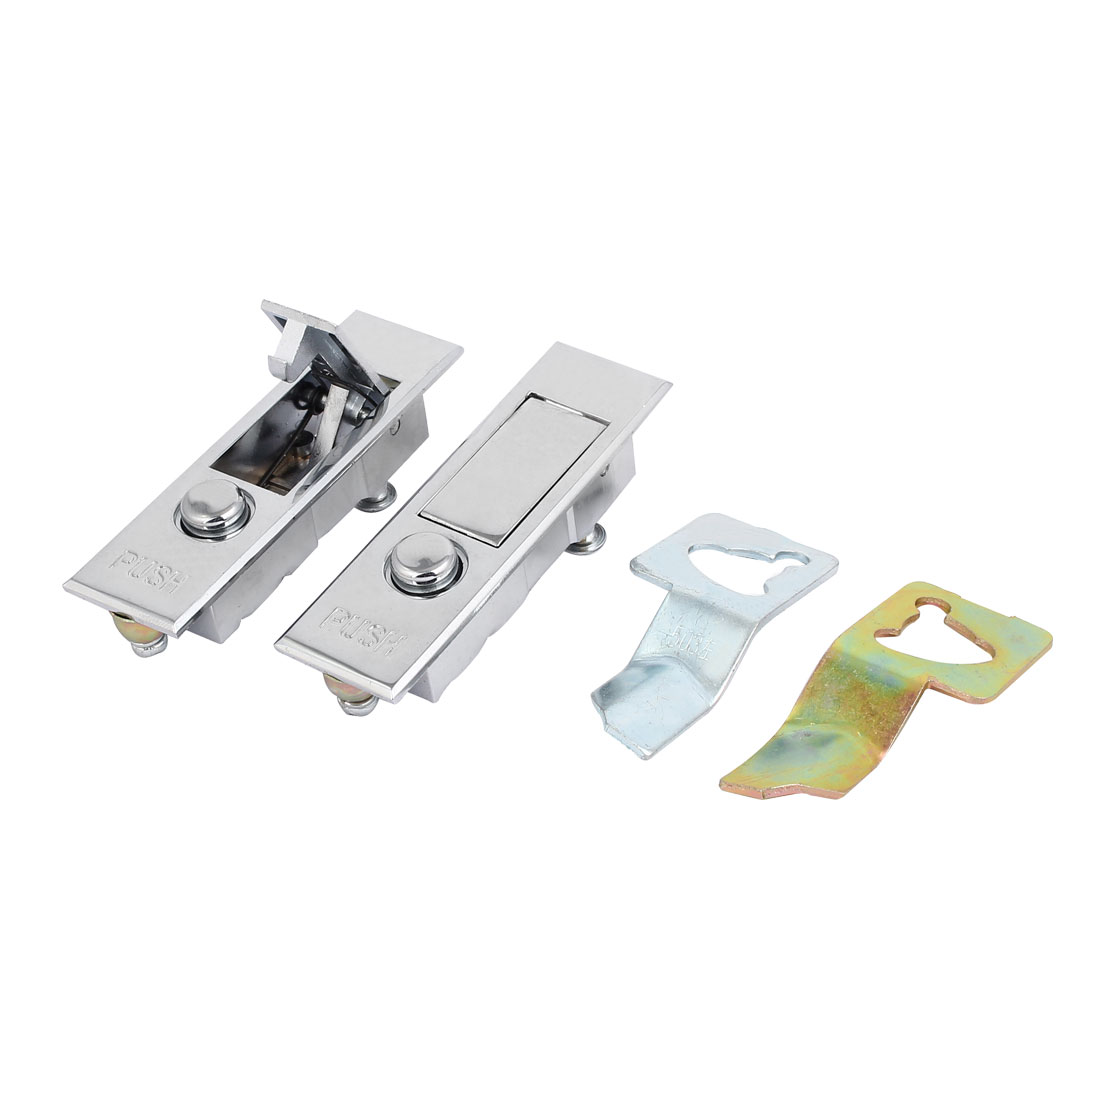 Electric Cabinet Toolbox Metal Push-up Keyless Plane Lock Lockset 2pcs